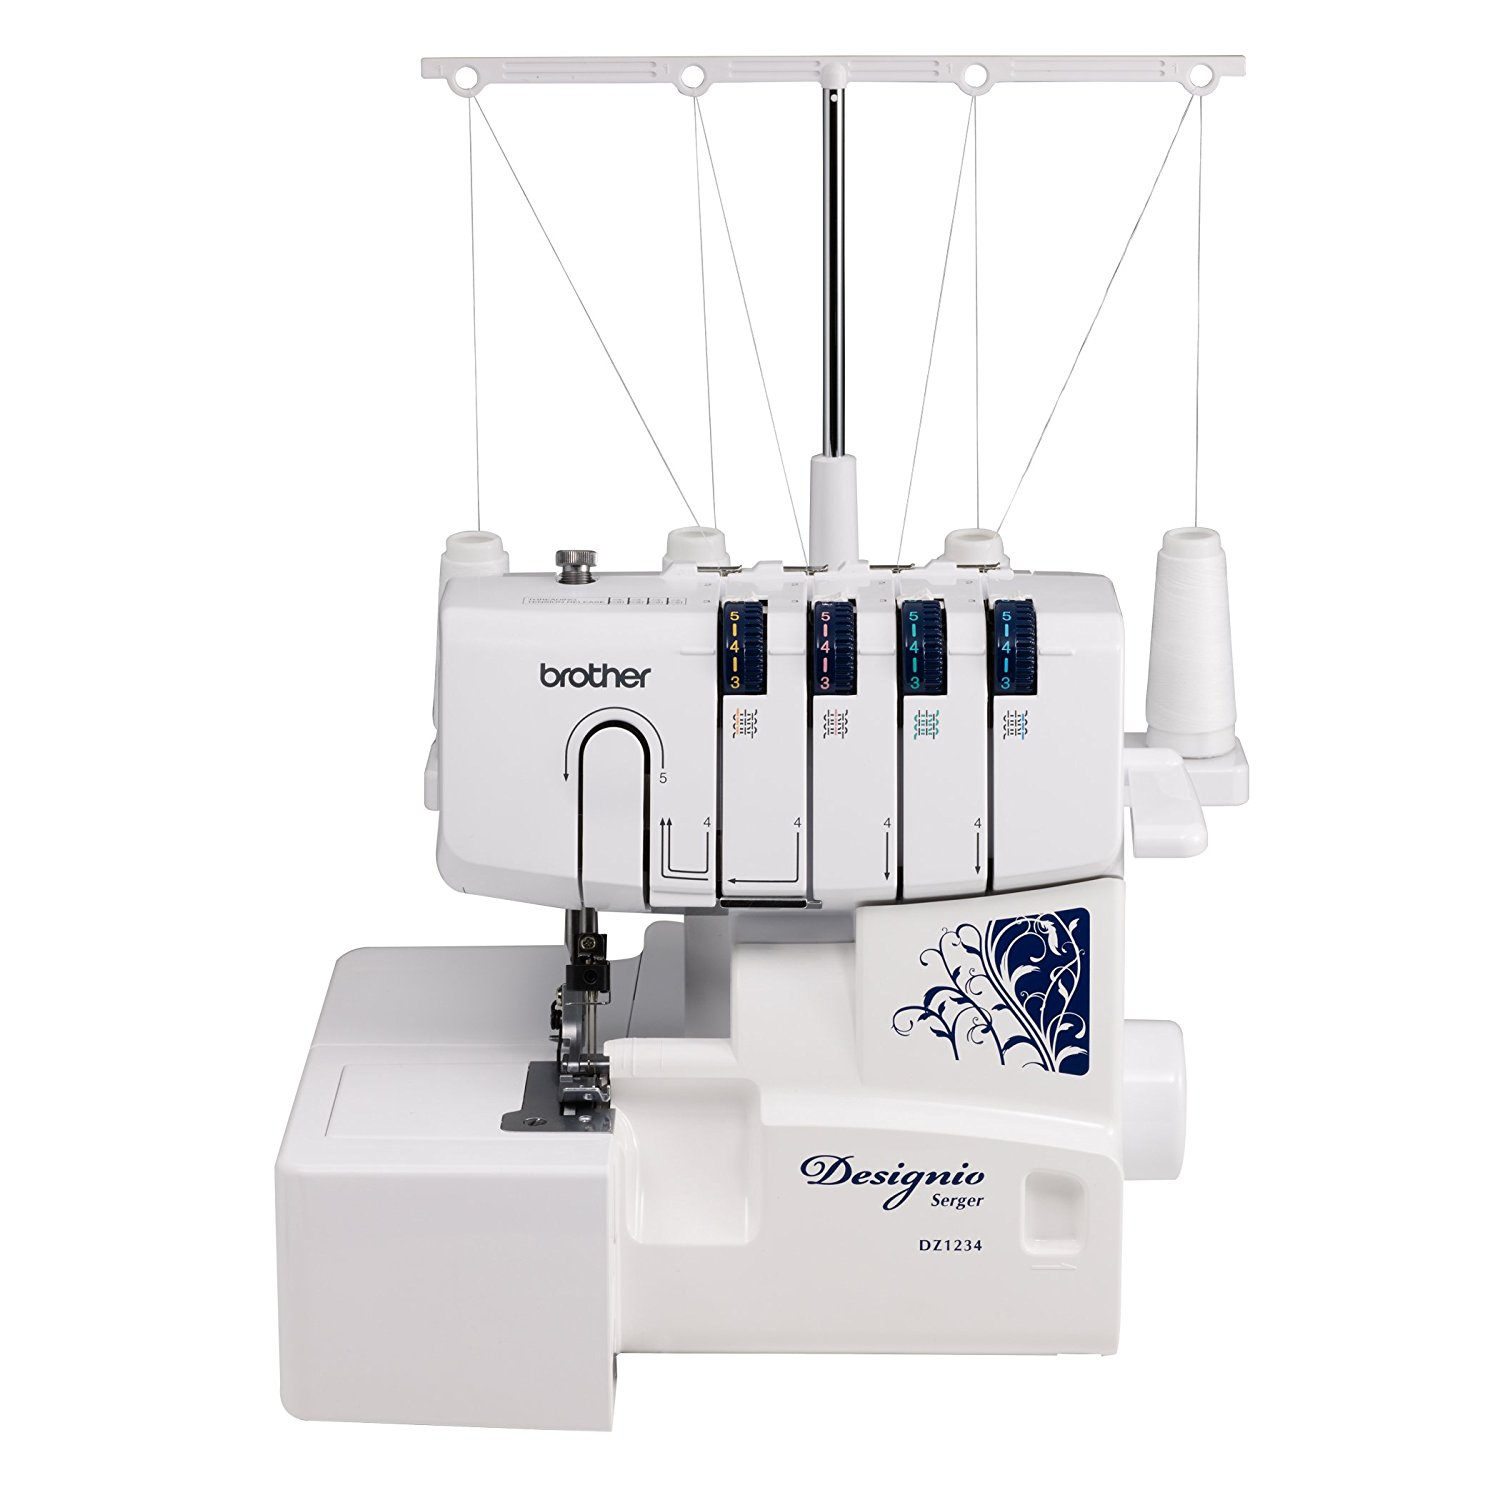 best serger machine: Choose this if you're a pro